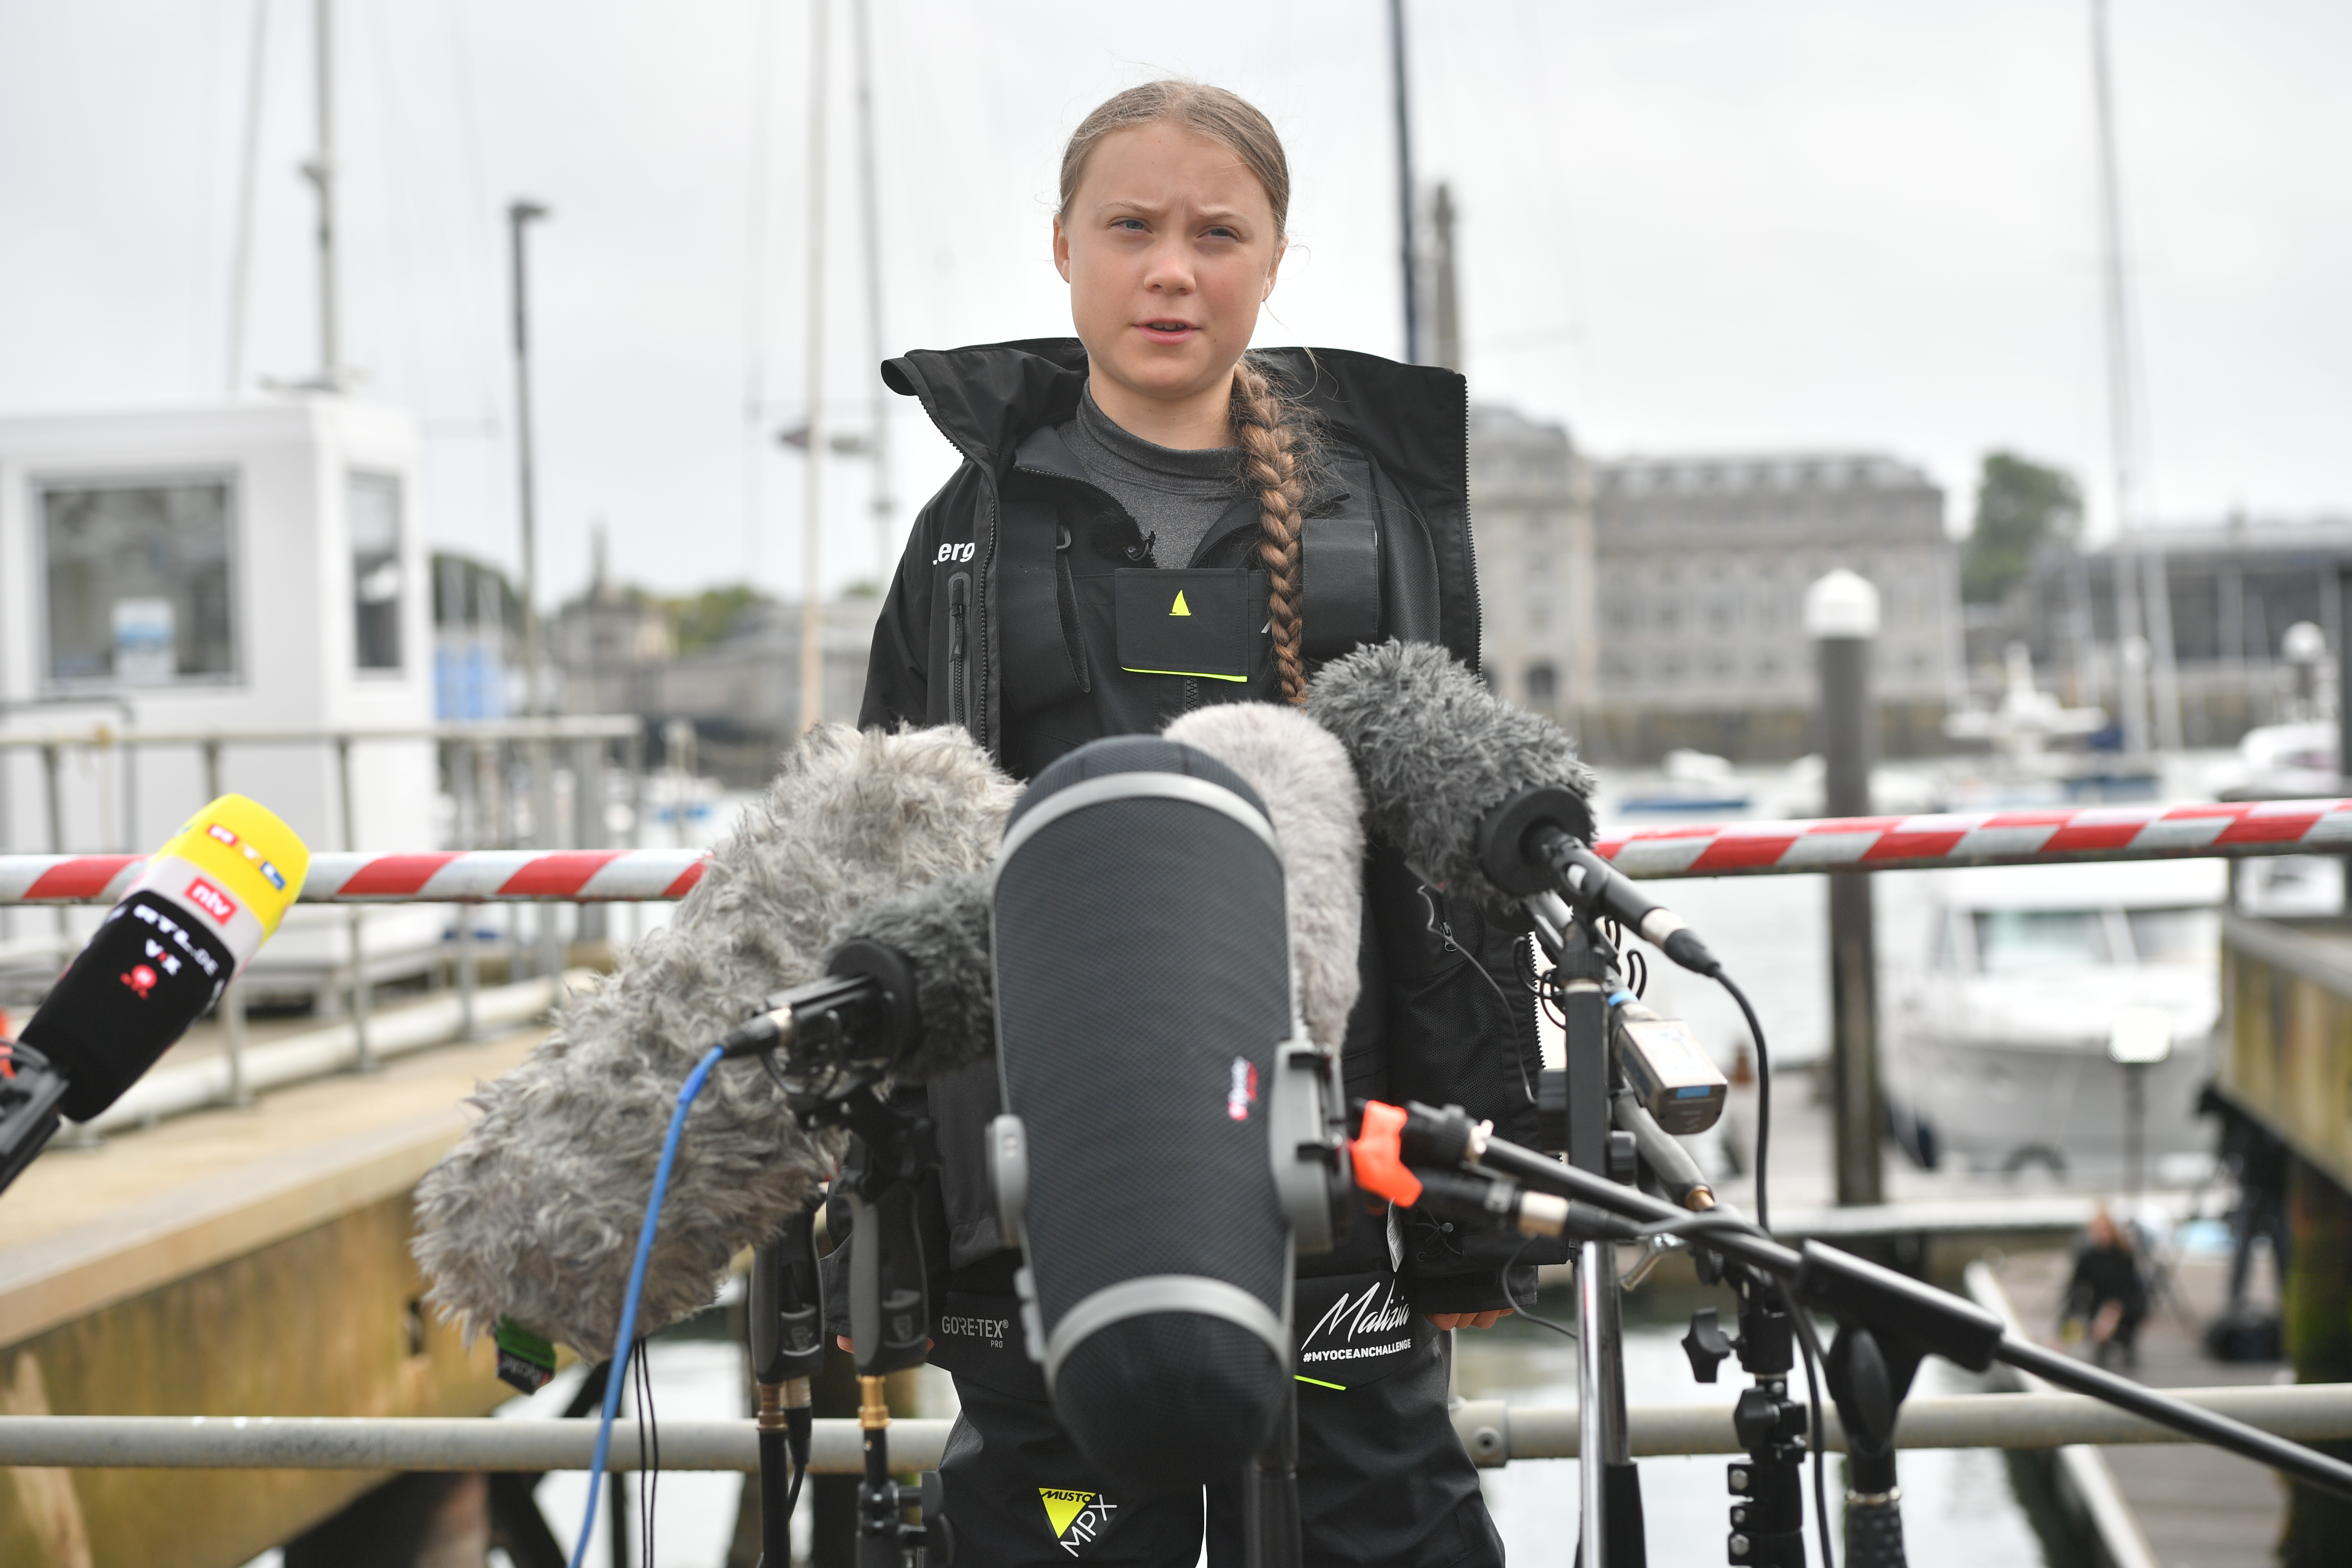 File photo dated 14/08/19 of climate activist Greta Thunberg, who will be followed by documentary cameras for a new TV series.